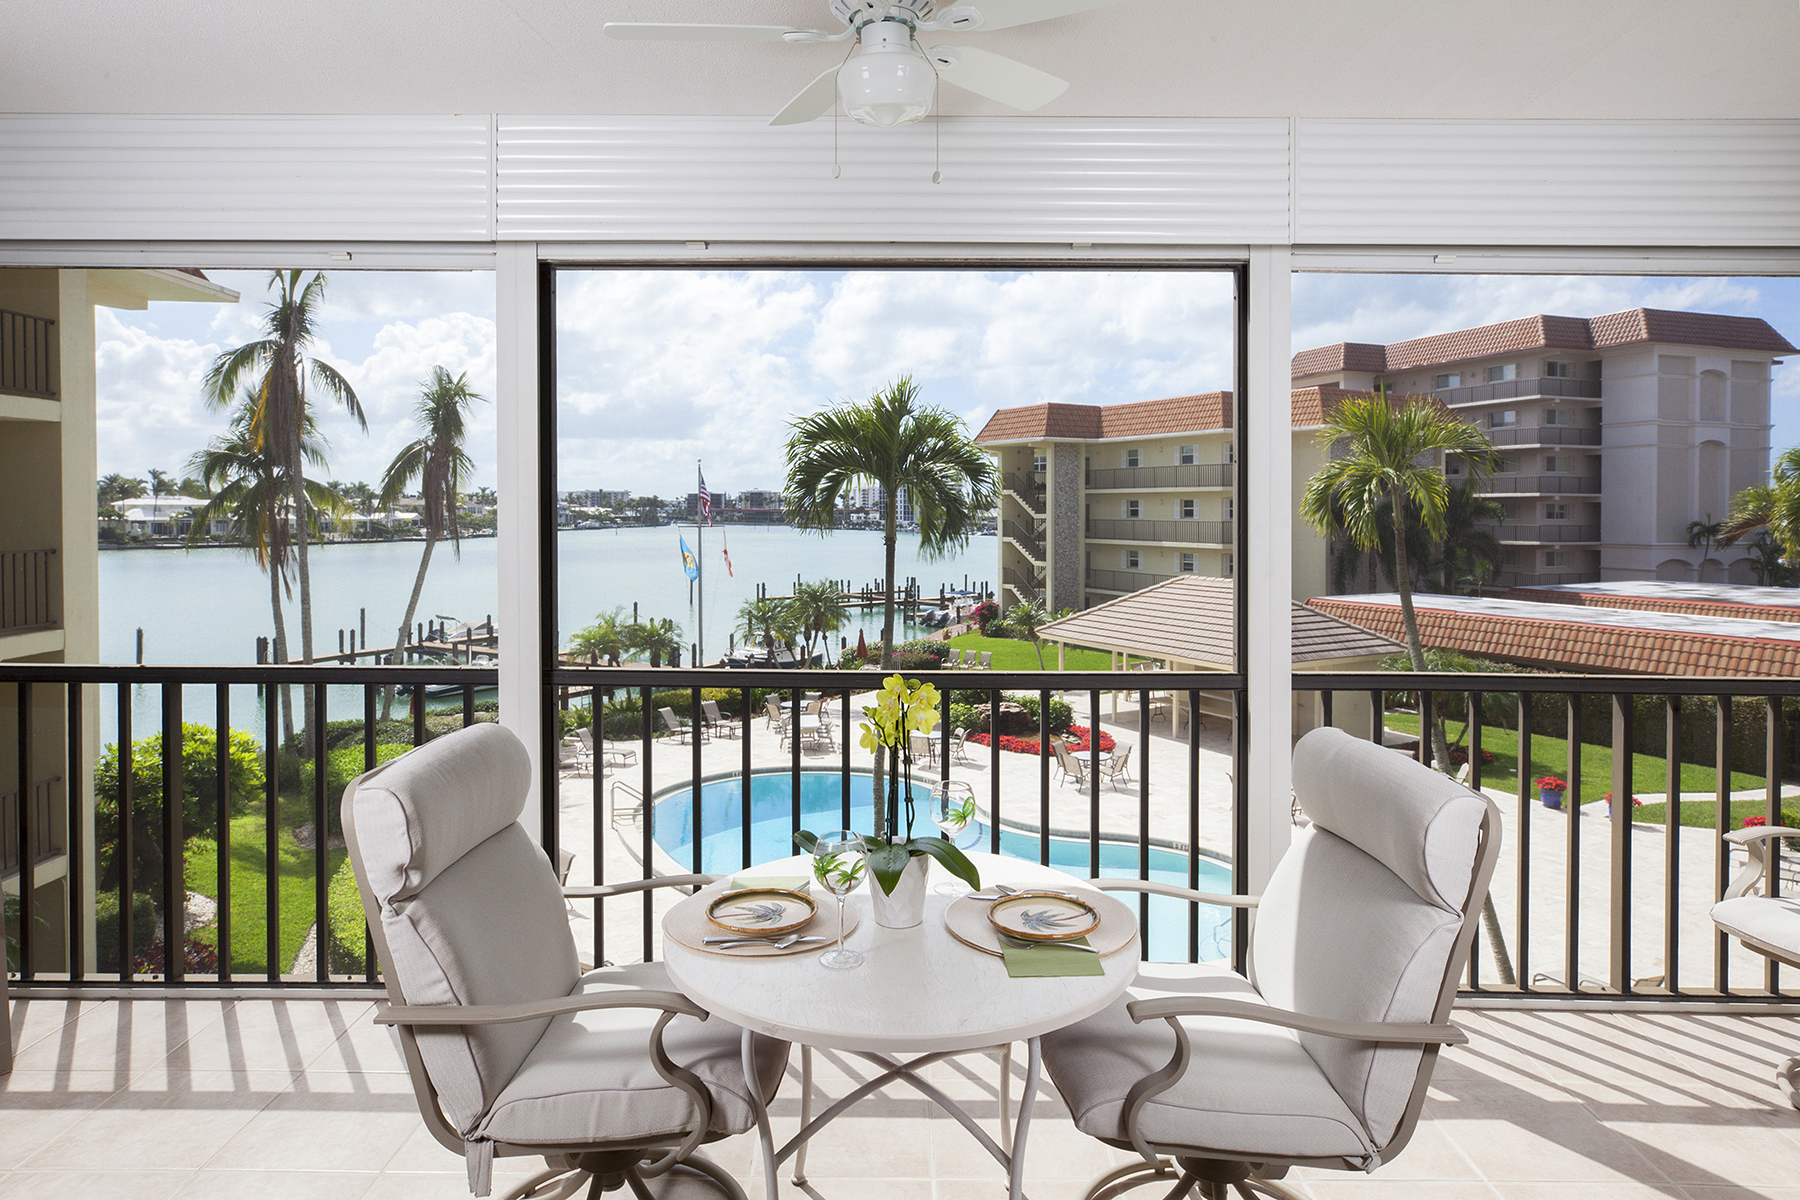 Condominium for Sale at MOORINGS - COMMODORE CLUB 222 Harbour Dr 306, Naples, Florida, 34103 United States